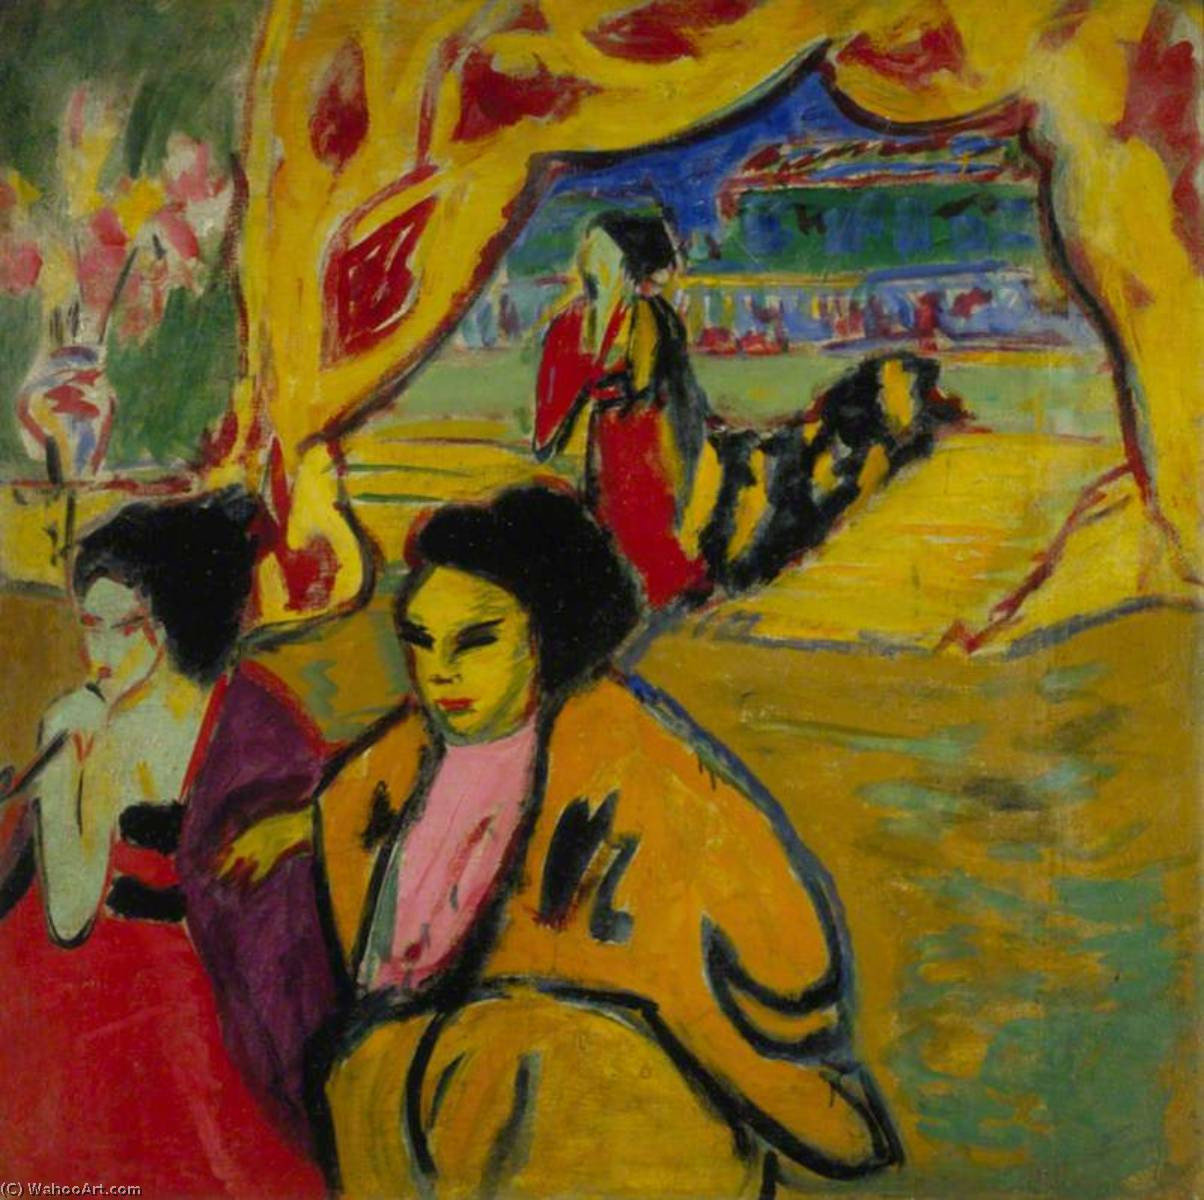 Japanisches Театр ( Японский Театр ), холст, масло по Ernst Ludwig Kirchner (1880-1938, Germany)